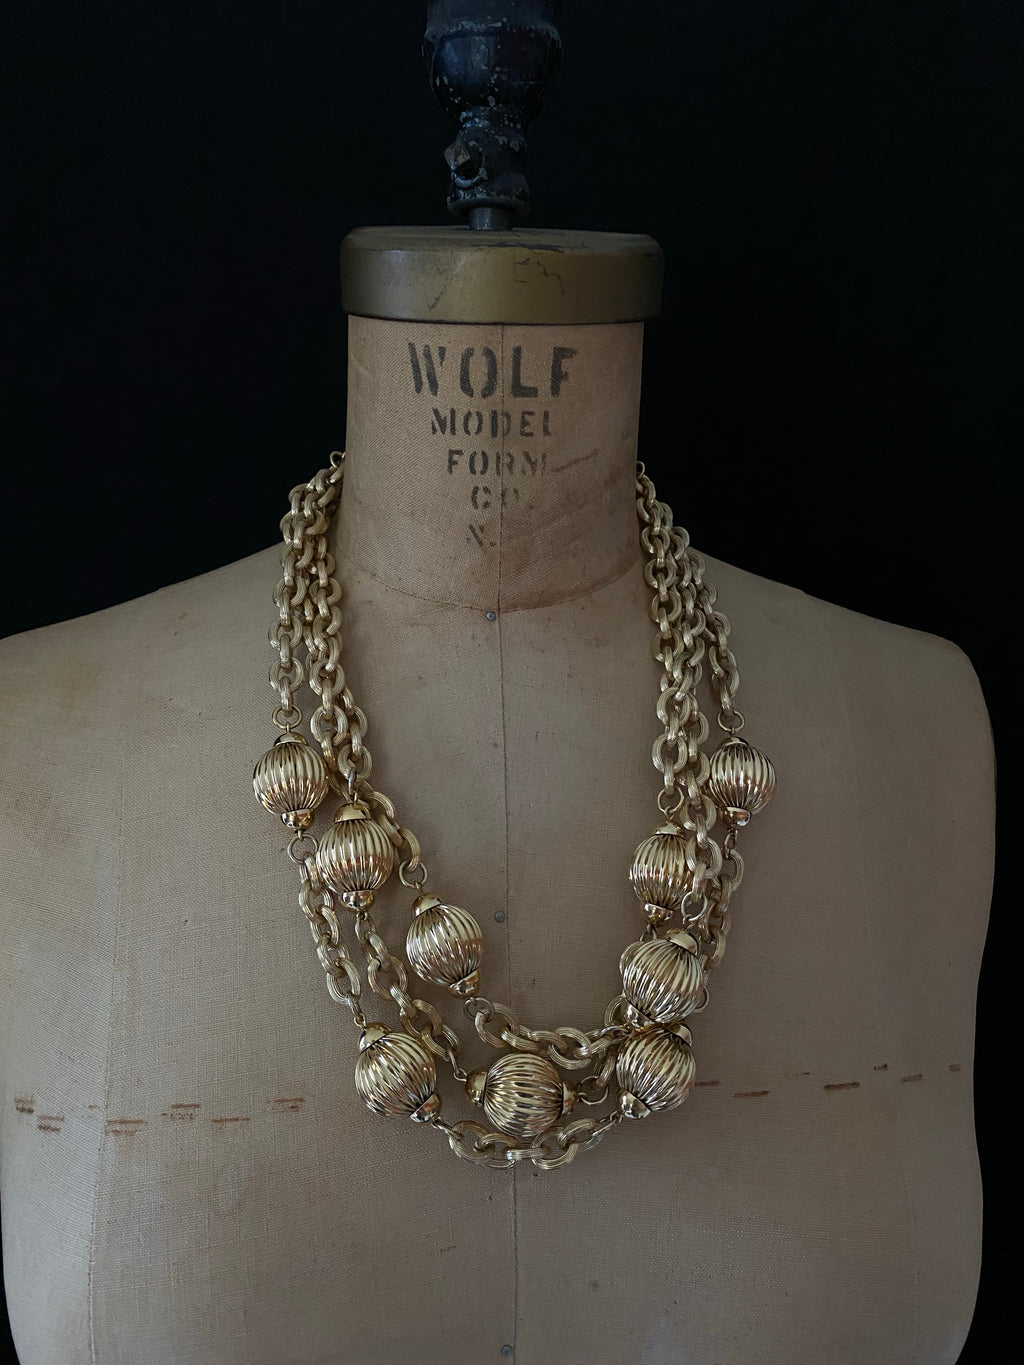 Givenchy Gold Layered Chain & Bead Vintage Pendant-Sustainable Fashion with Vintage Style-Trending Designer Fashion-24 Wishes